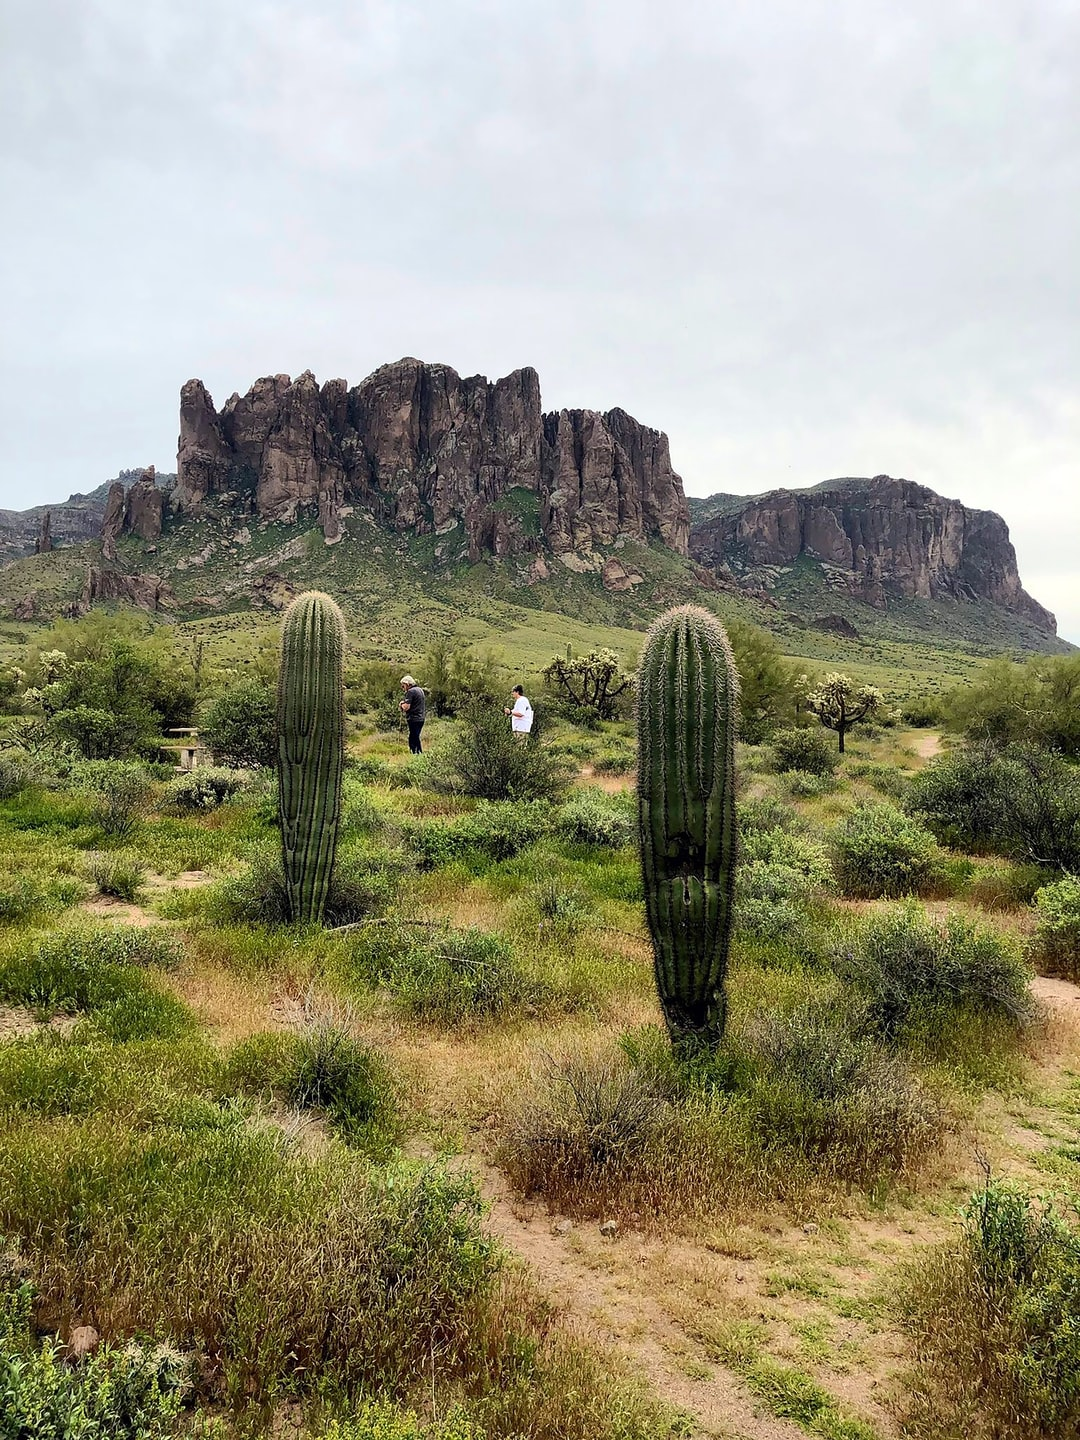 Hiking in the Superstitions